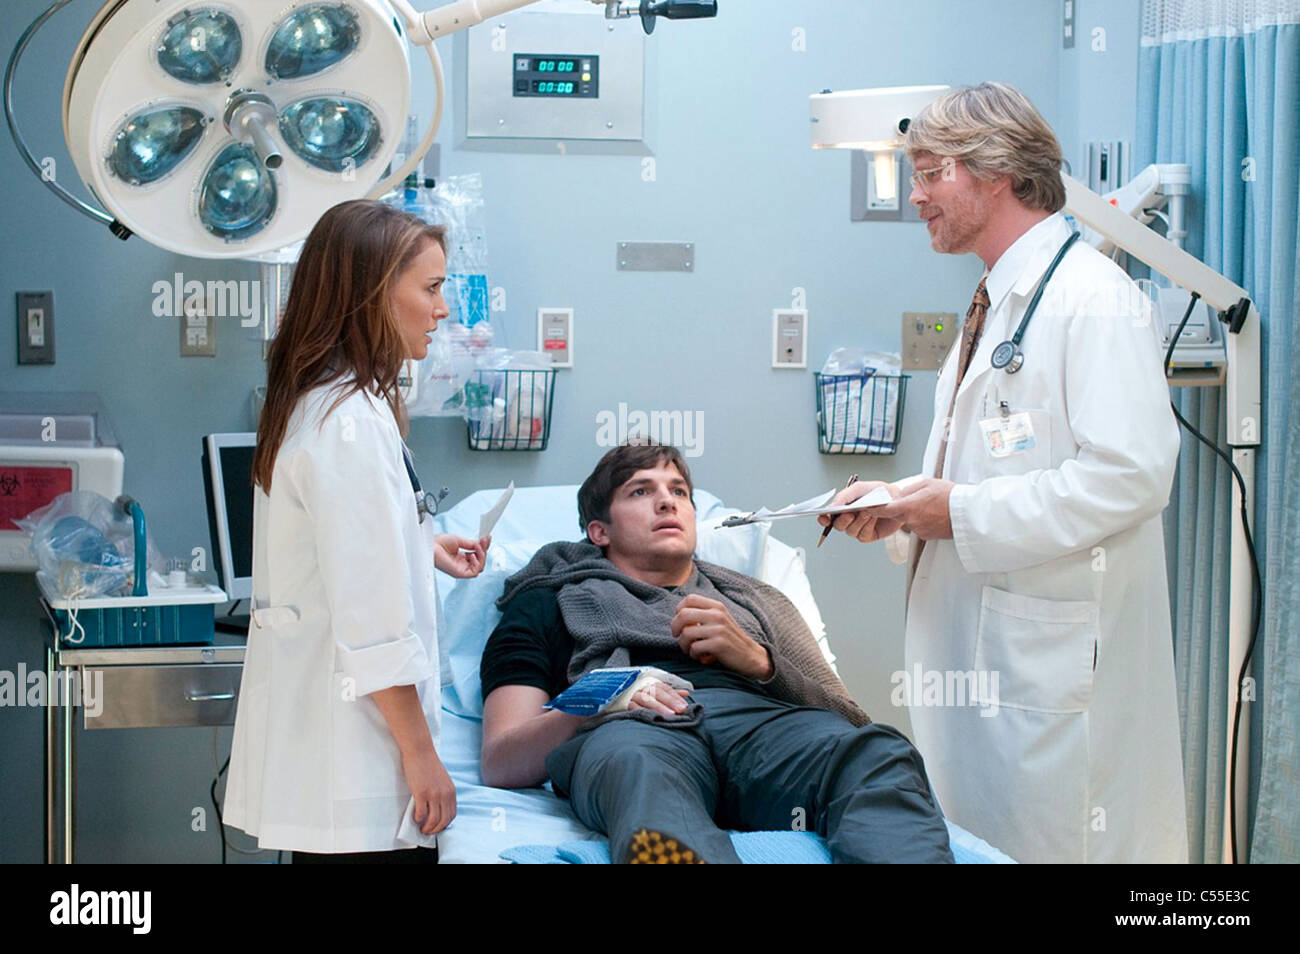 NO STRINGS ATTACHED 2011 Paramount Pictures film with from left Natalie Portman, Ashton Kutcher and Cary Elwes - Stock Image